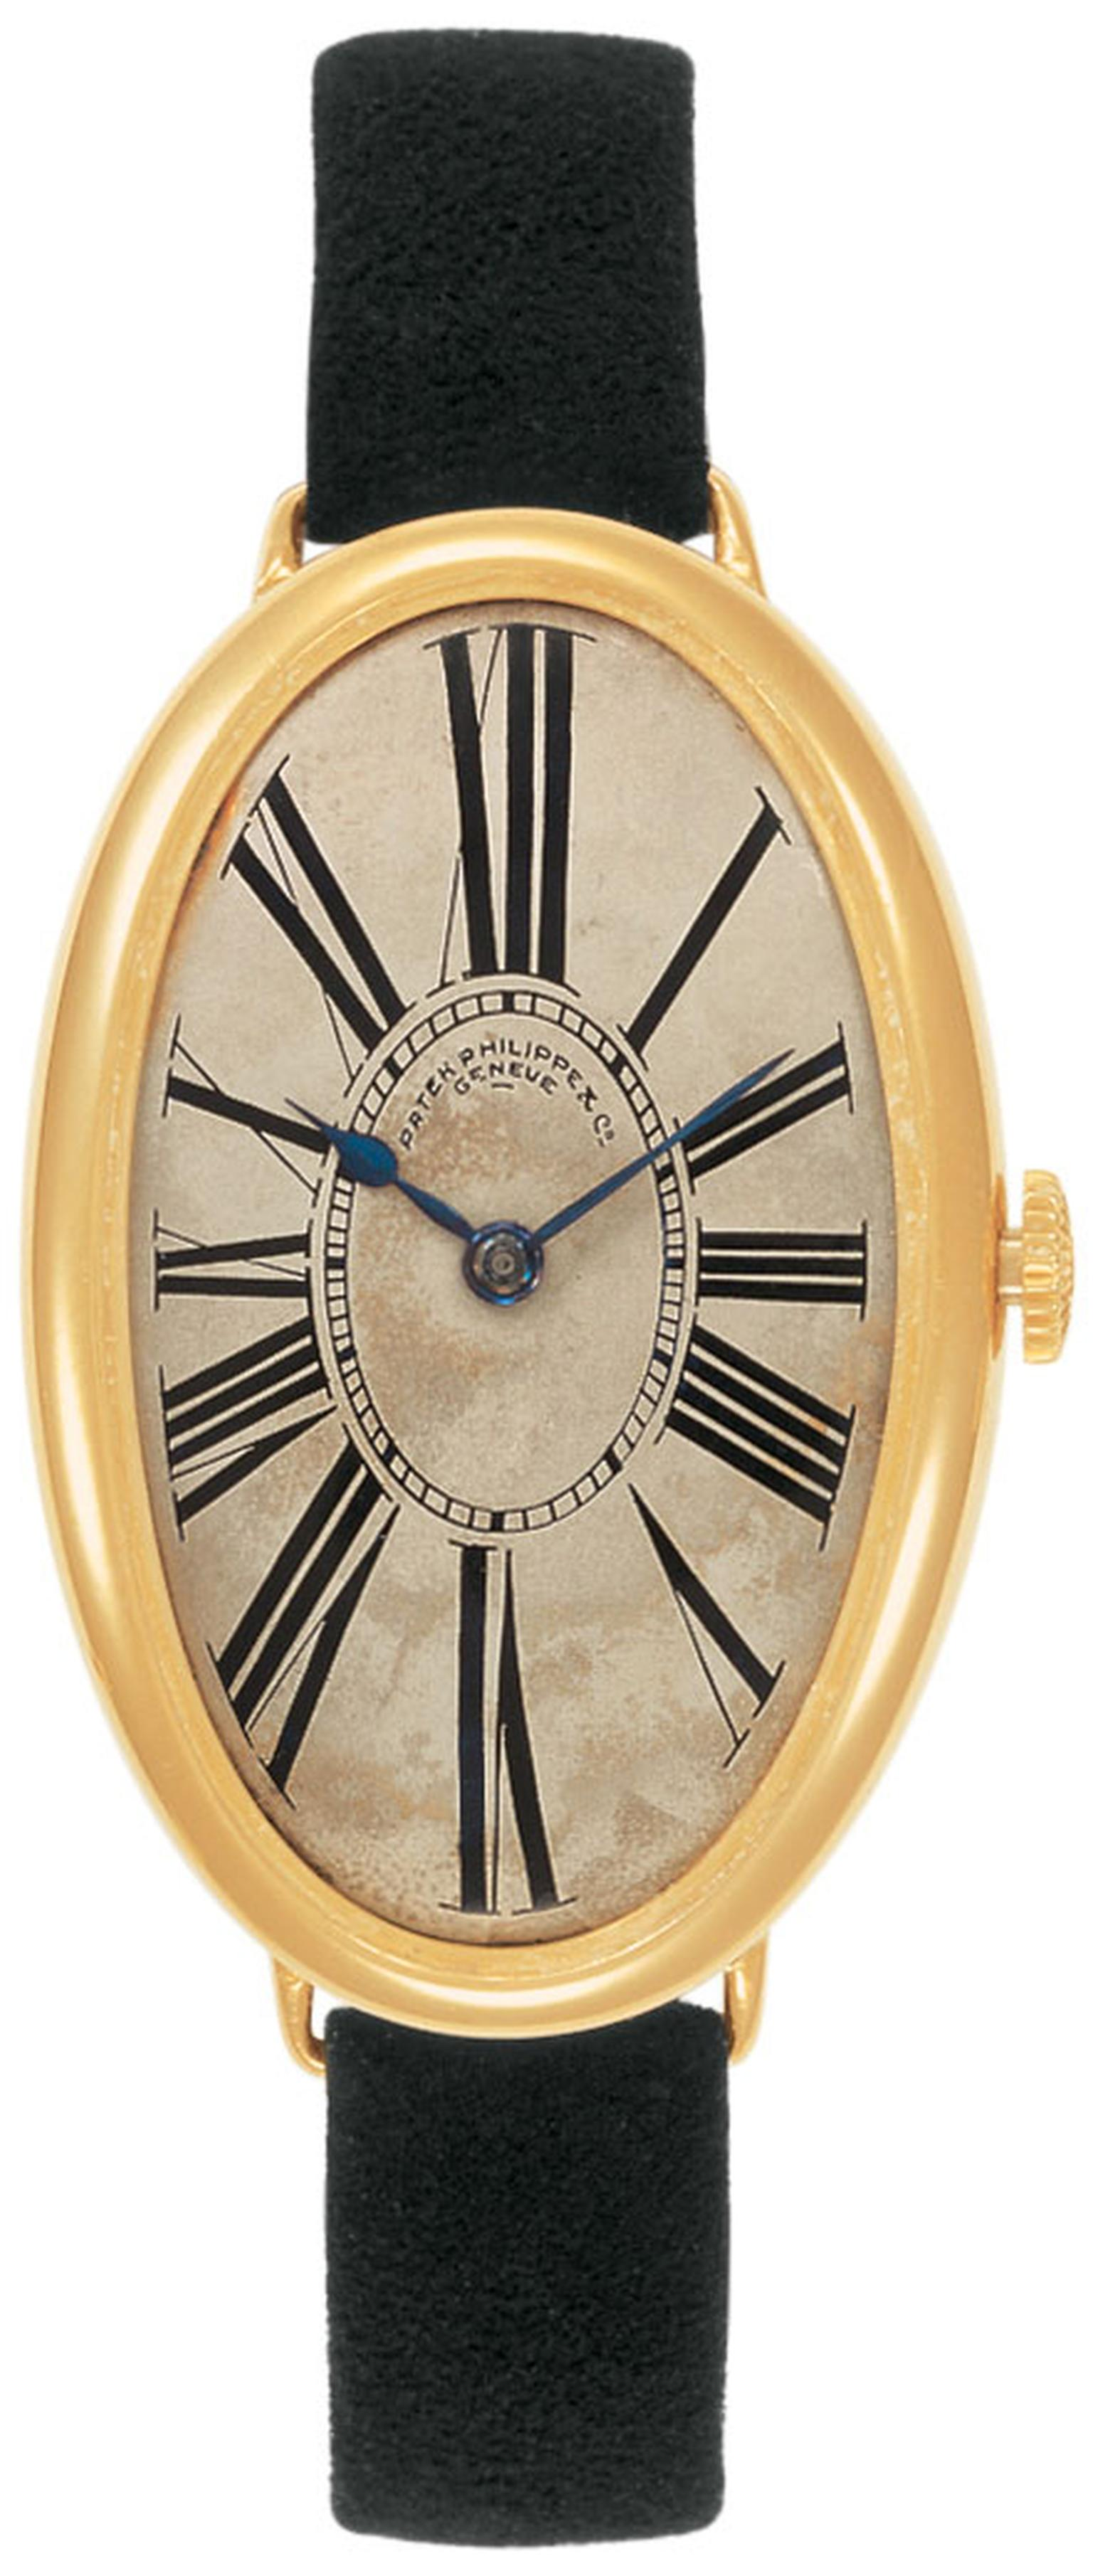 Patek-Philippe-P1155_a_100_collection--1915-25.jpg